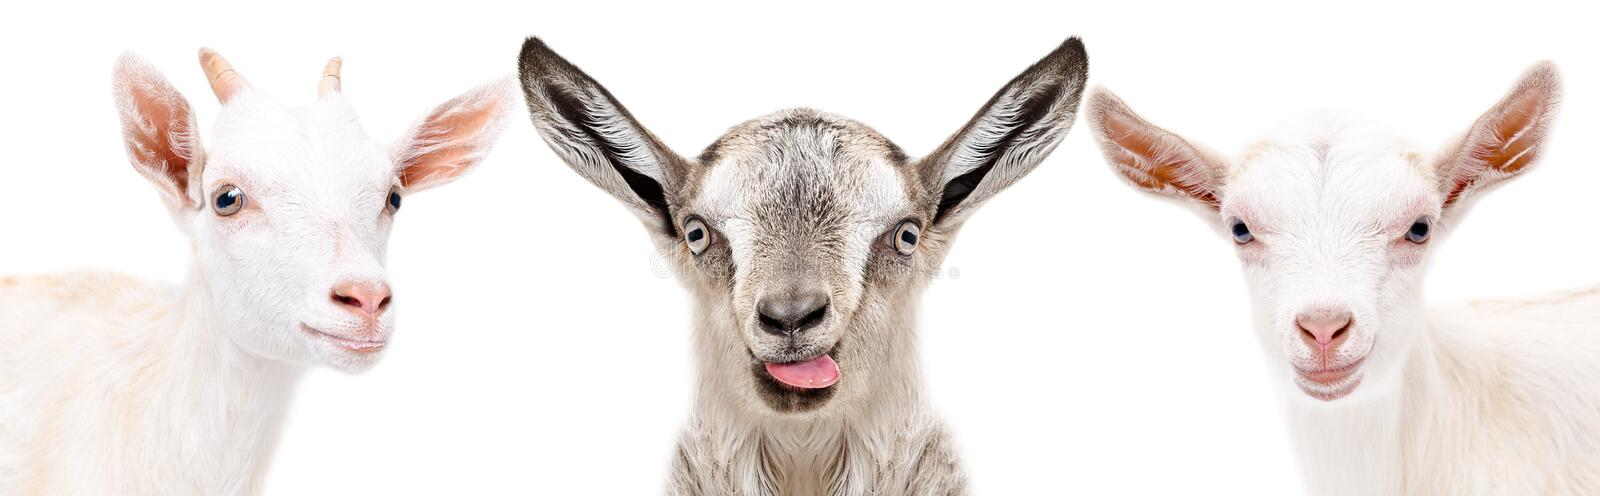 Portrait of a three funny goat stock photo